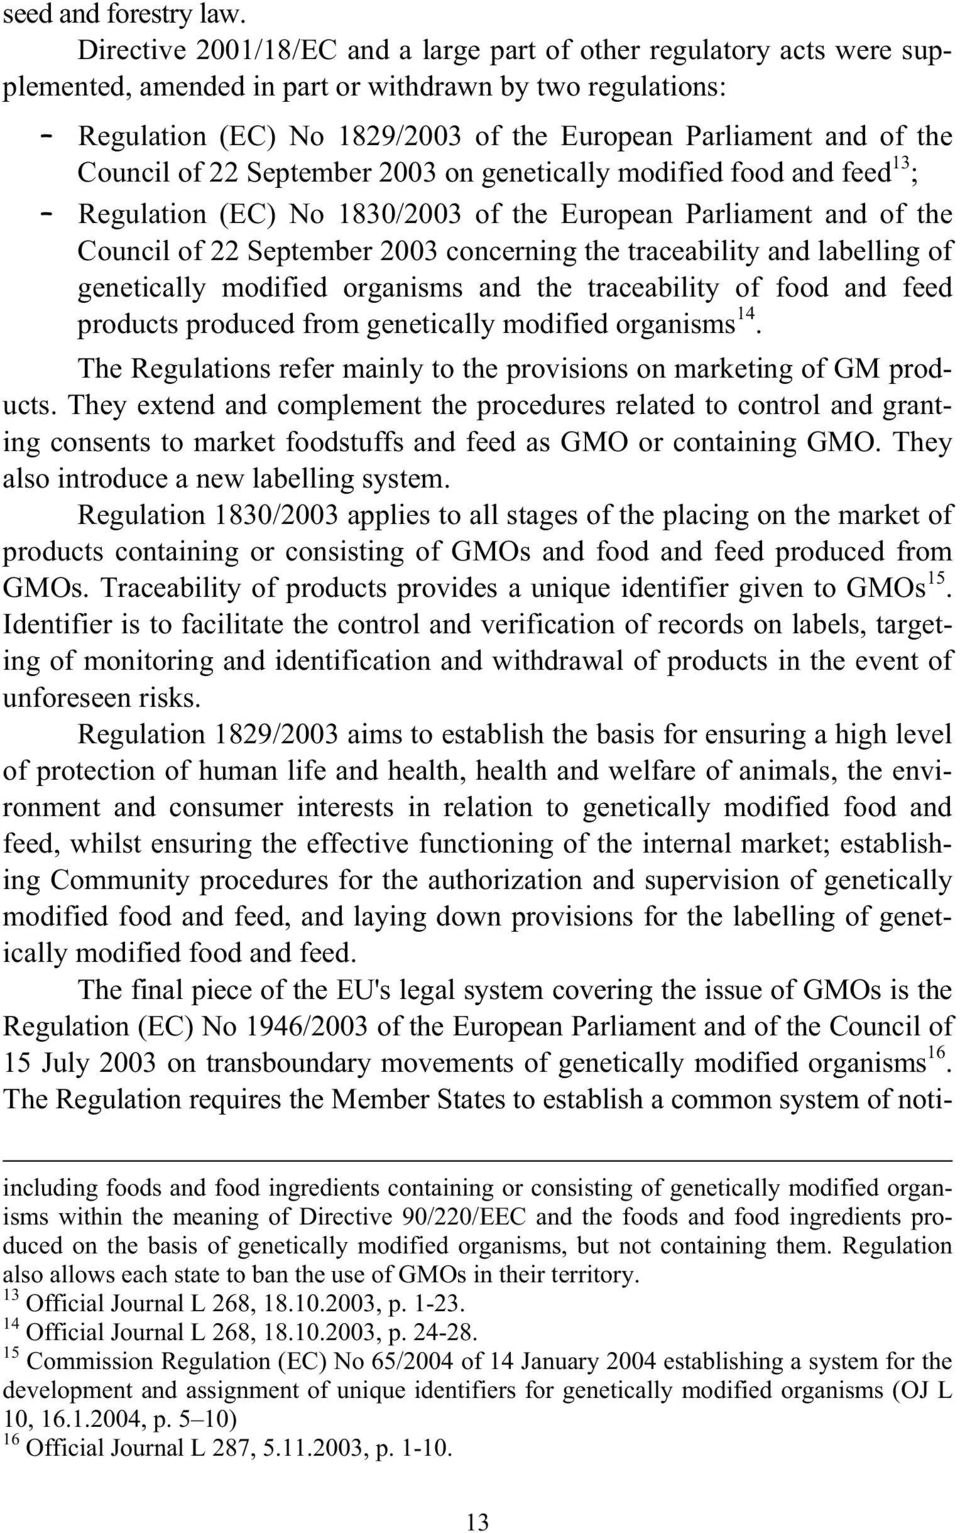 Council of 22 September 2003 on genetically modified food and feed 13 ; Regulation (EC) No 1830/2003 of the European Parliament and of the Council of 22 September 2003 concerning the traceability and